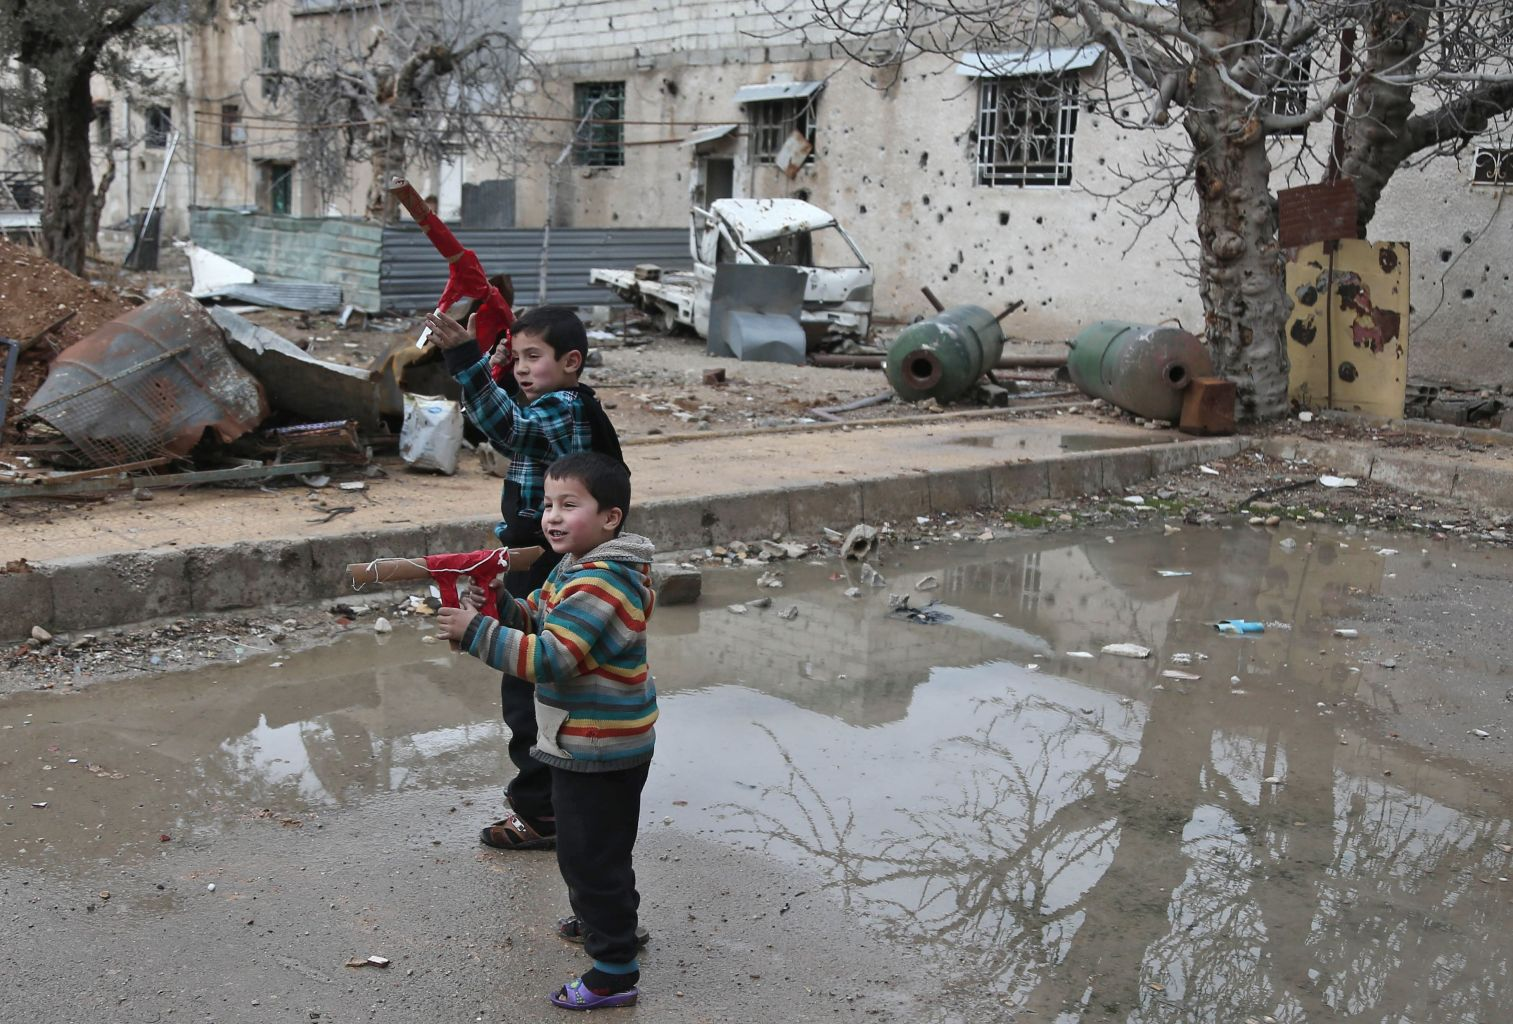 Syrian children play with cardboard guns in the rebel-held town of Harasta, in the Eastern Ghouta region on the outskirts of Damascus on January 25, 2018. / AFP PHOTO / ABDULMONAM EASSA        (Photo credit should read ABDULMONAM EASSA/AFP/Getty Images)